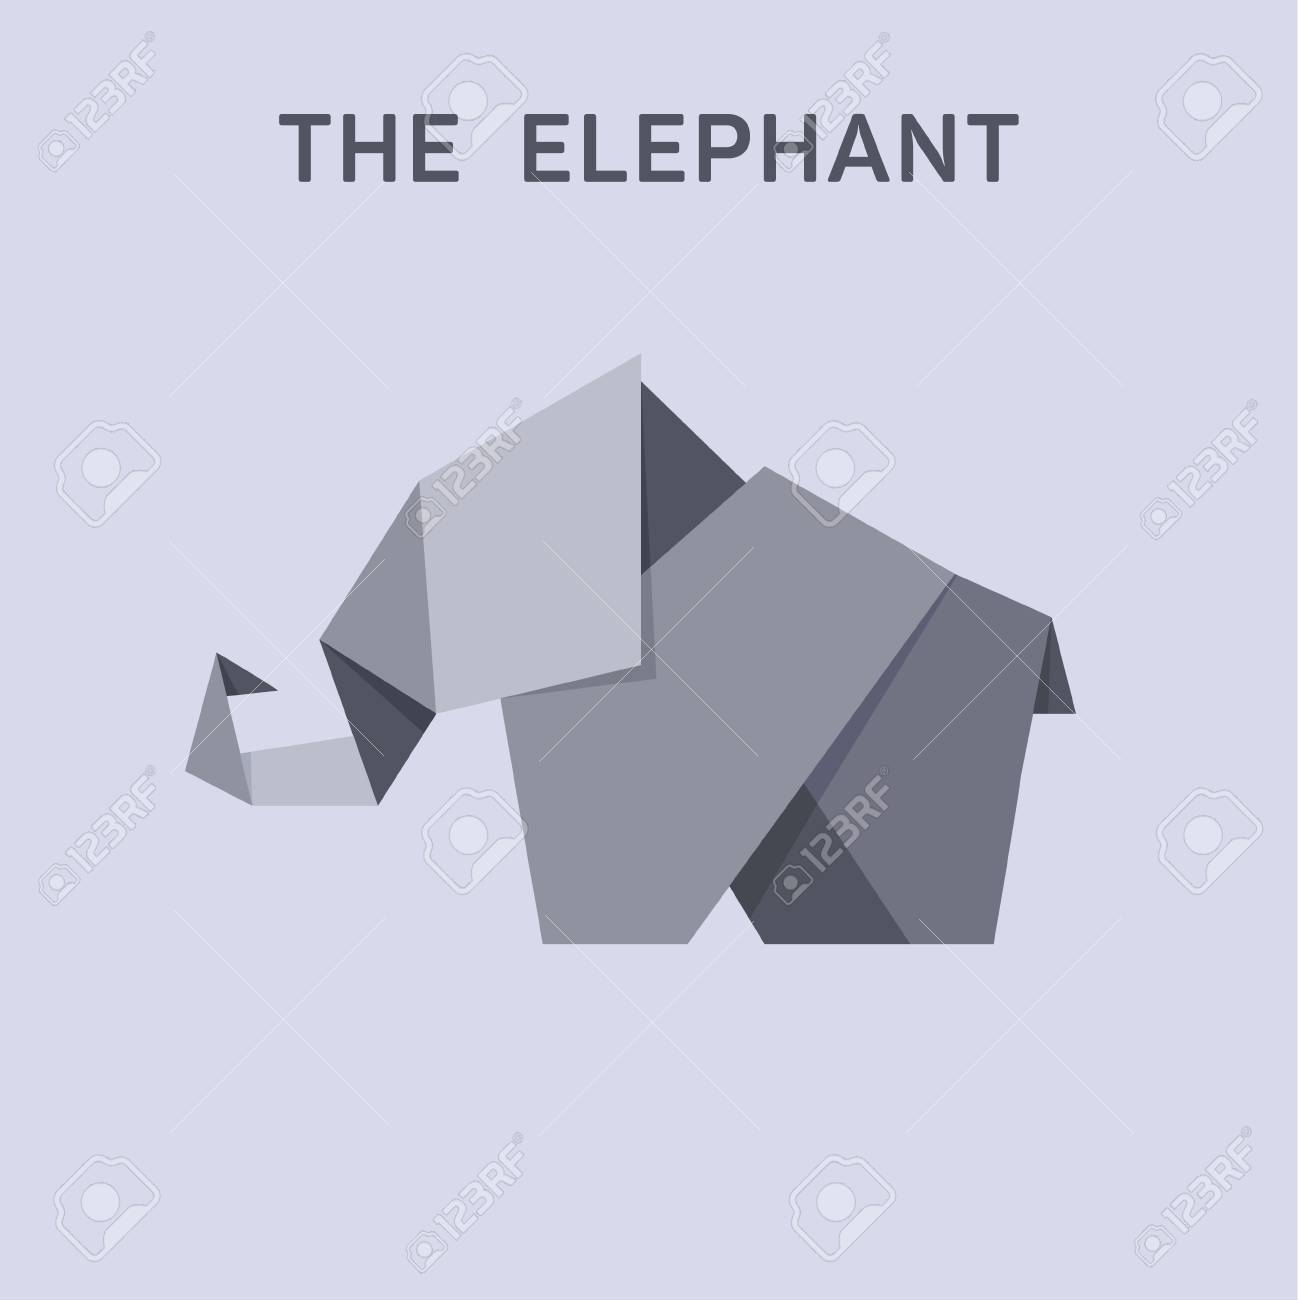 Origami Elephant Flat Style Design Illustration Animals Art Stock Vector